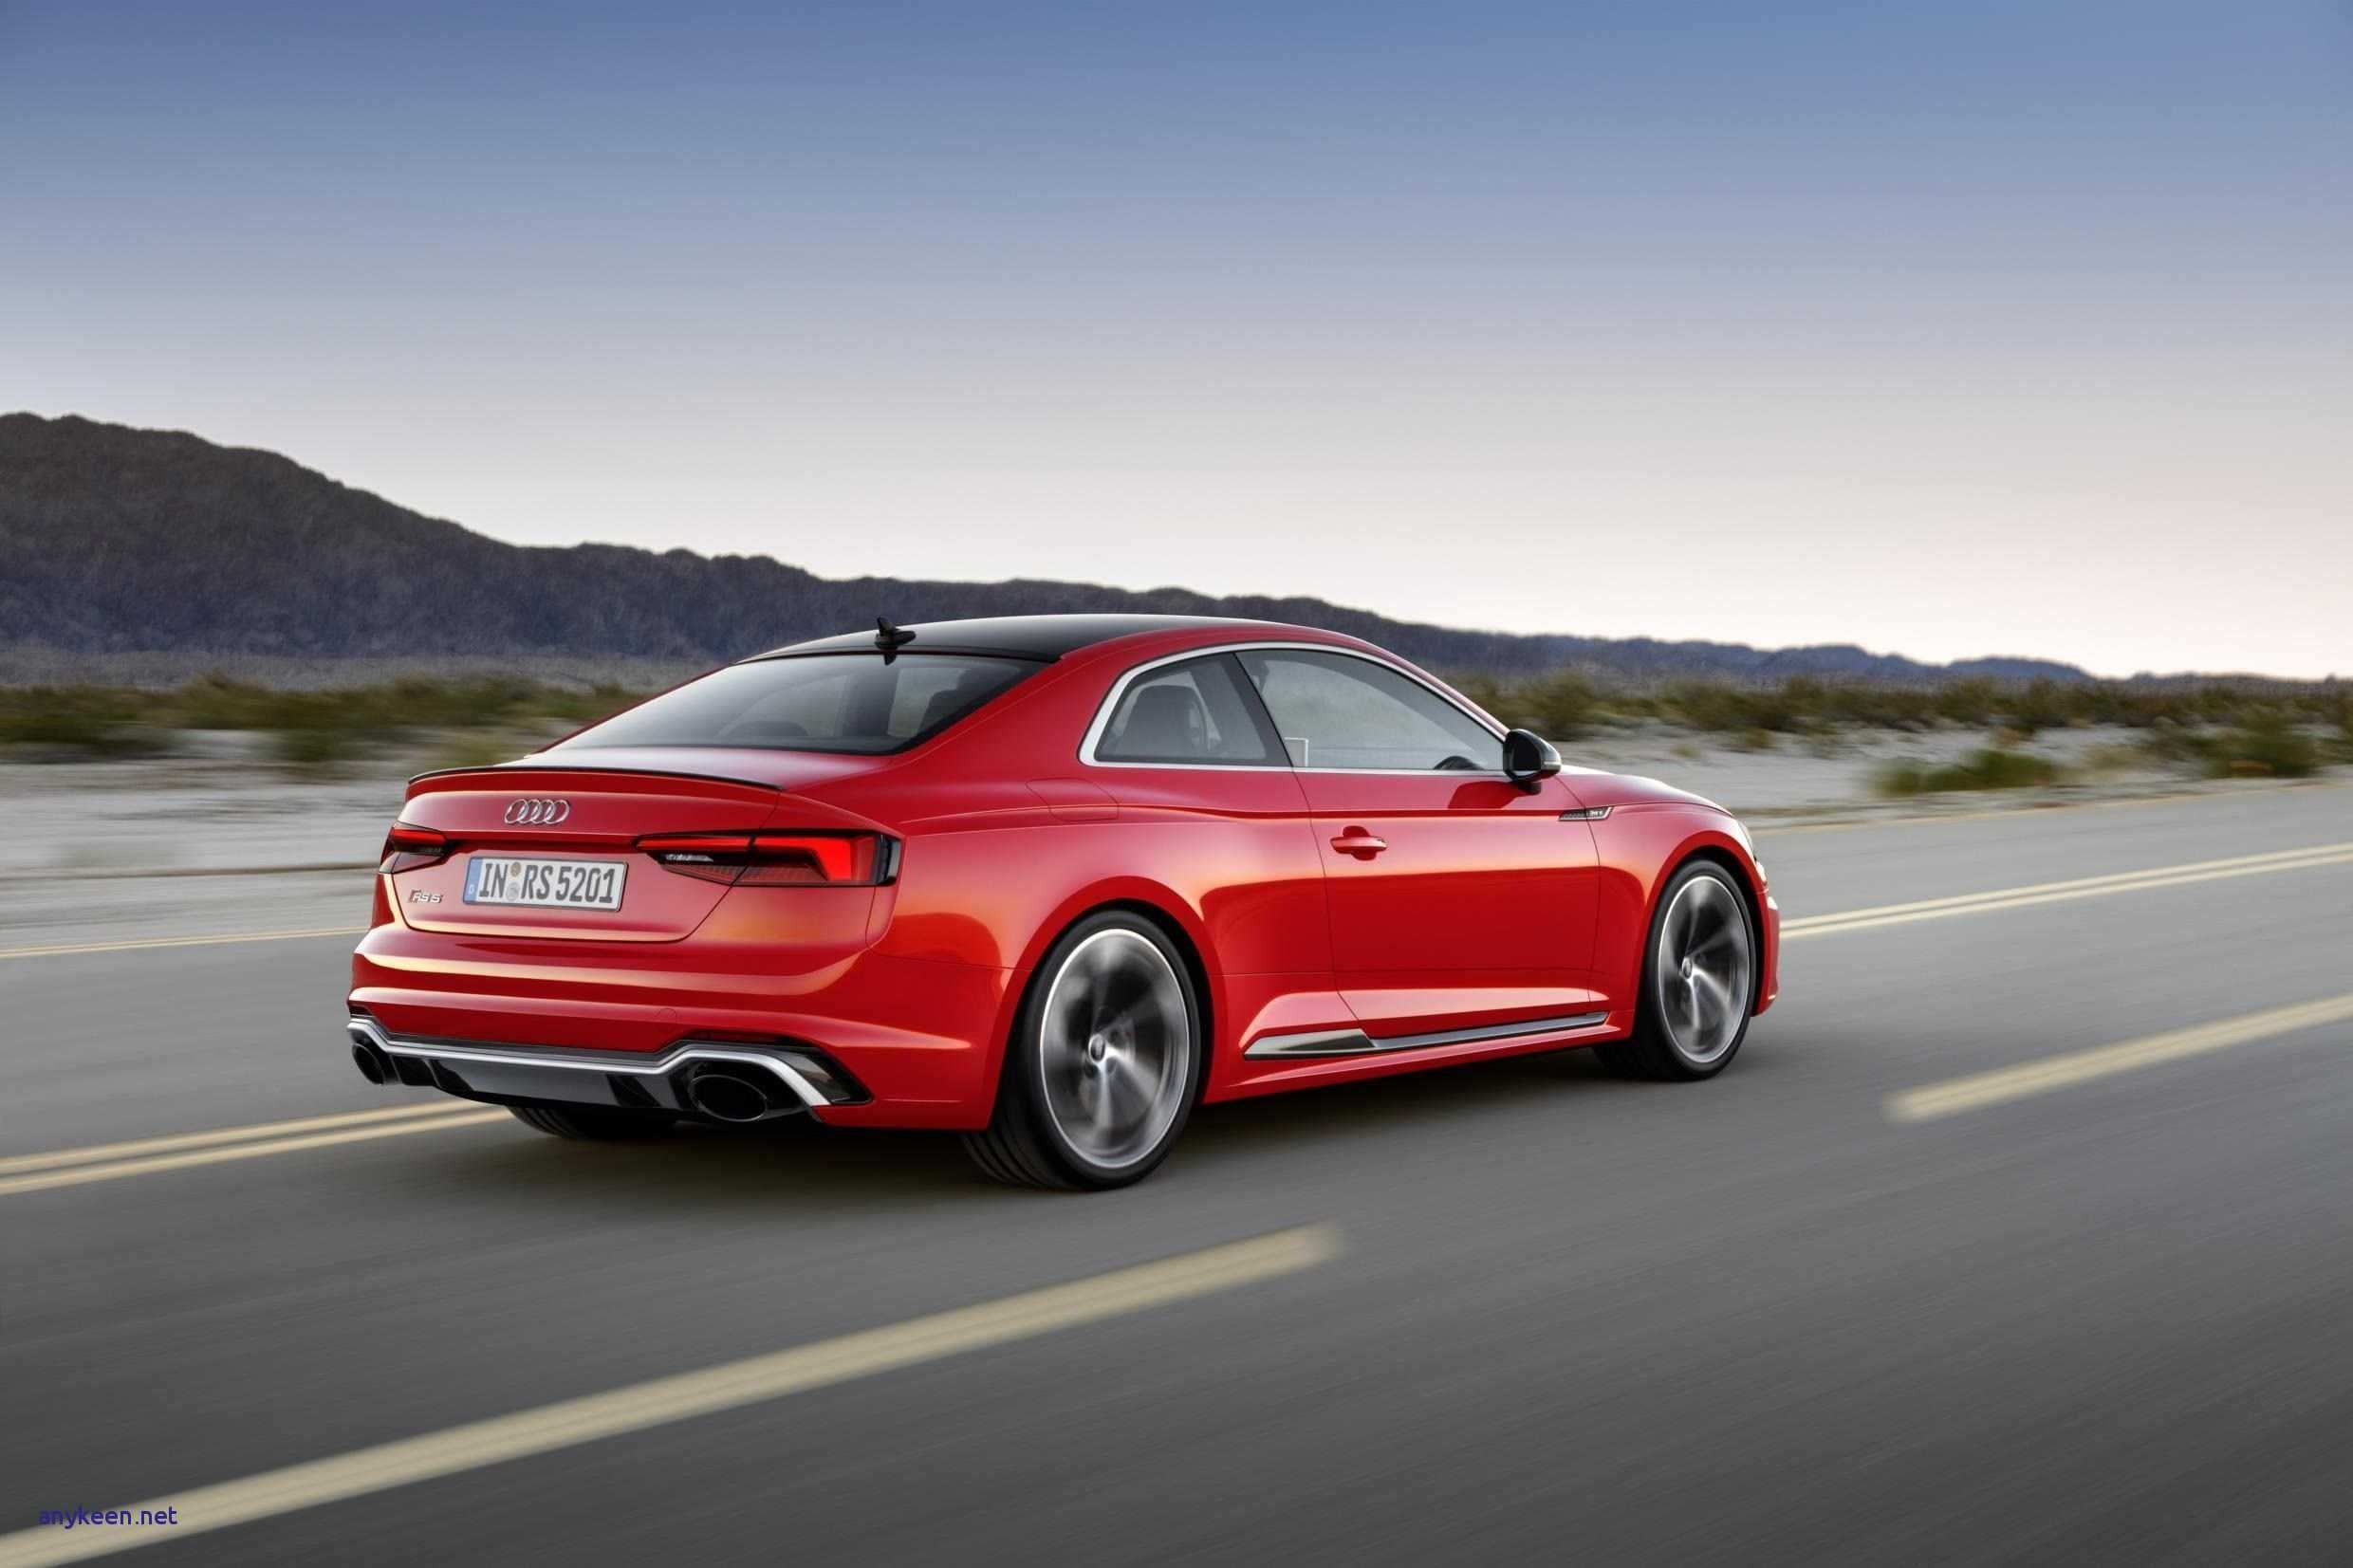 37 All New 2019 Audi Rs5 Prices